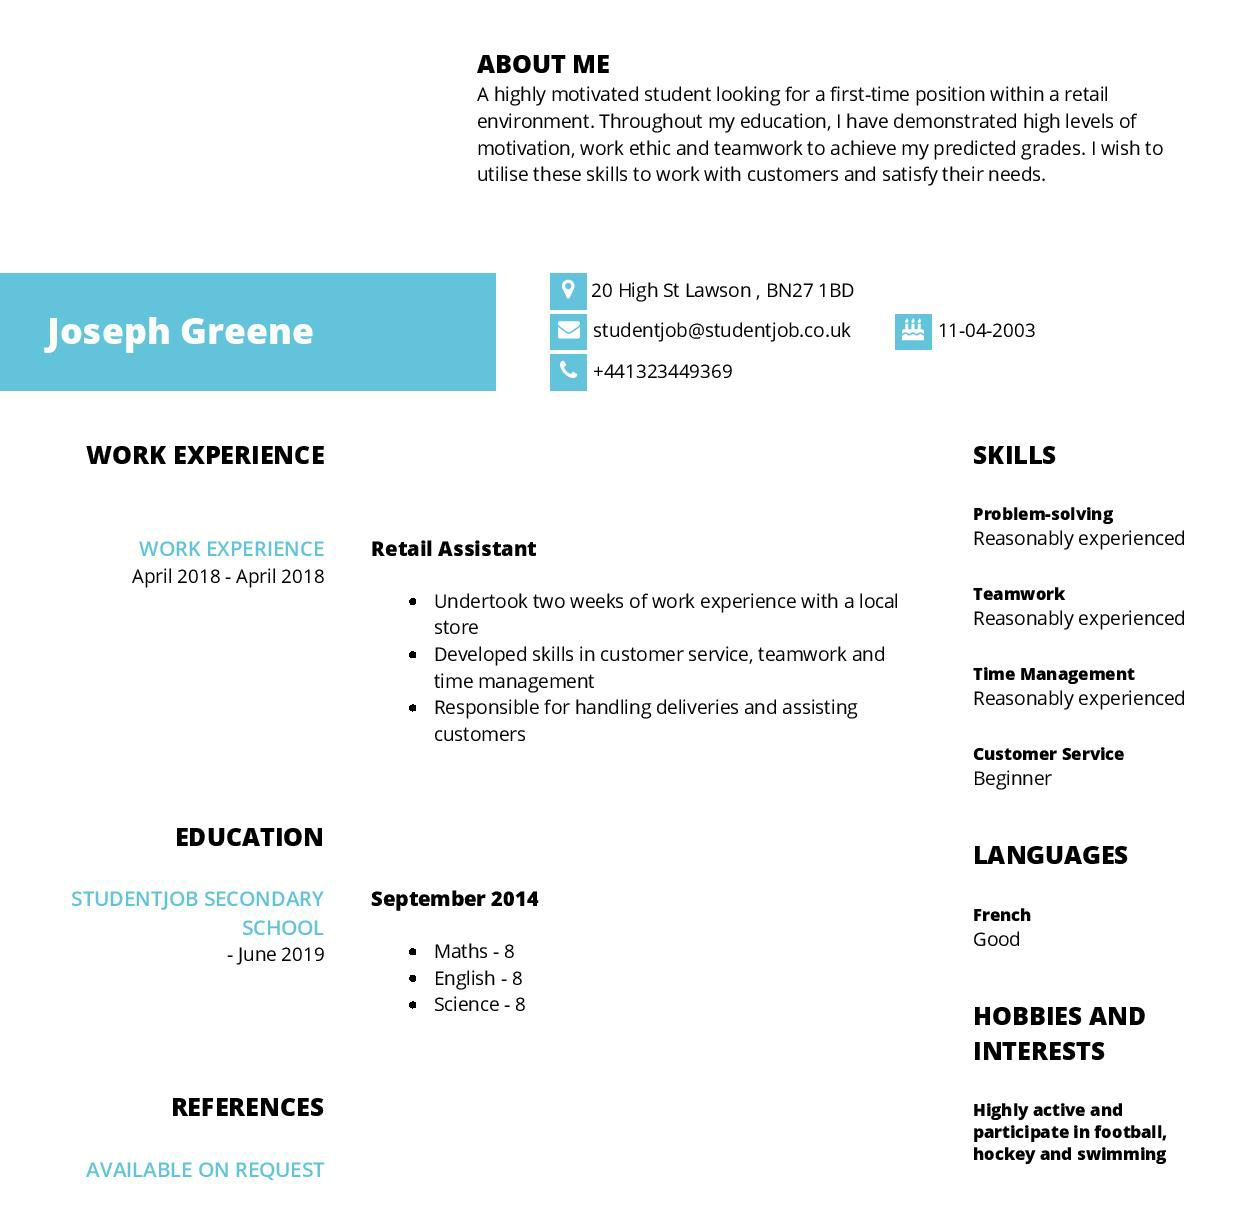 003 Phenomenal Resume Template For First Job Highest Clarity  After College Sample Student TeenagerFull